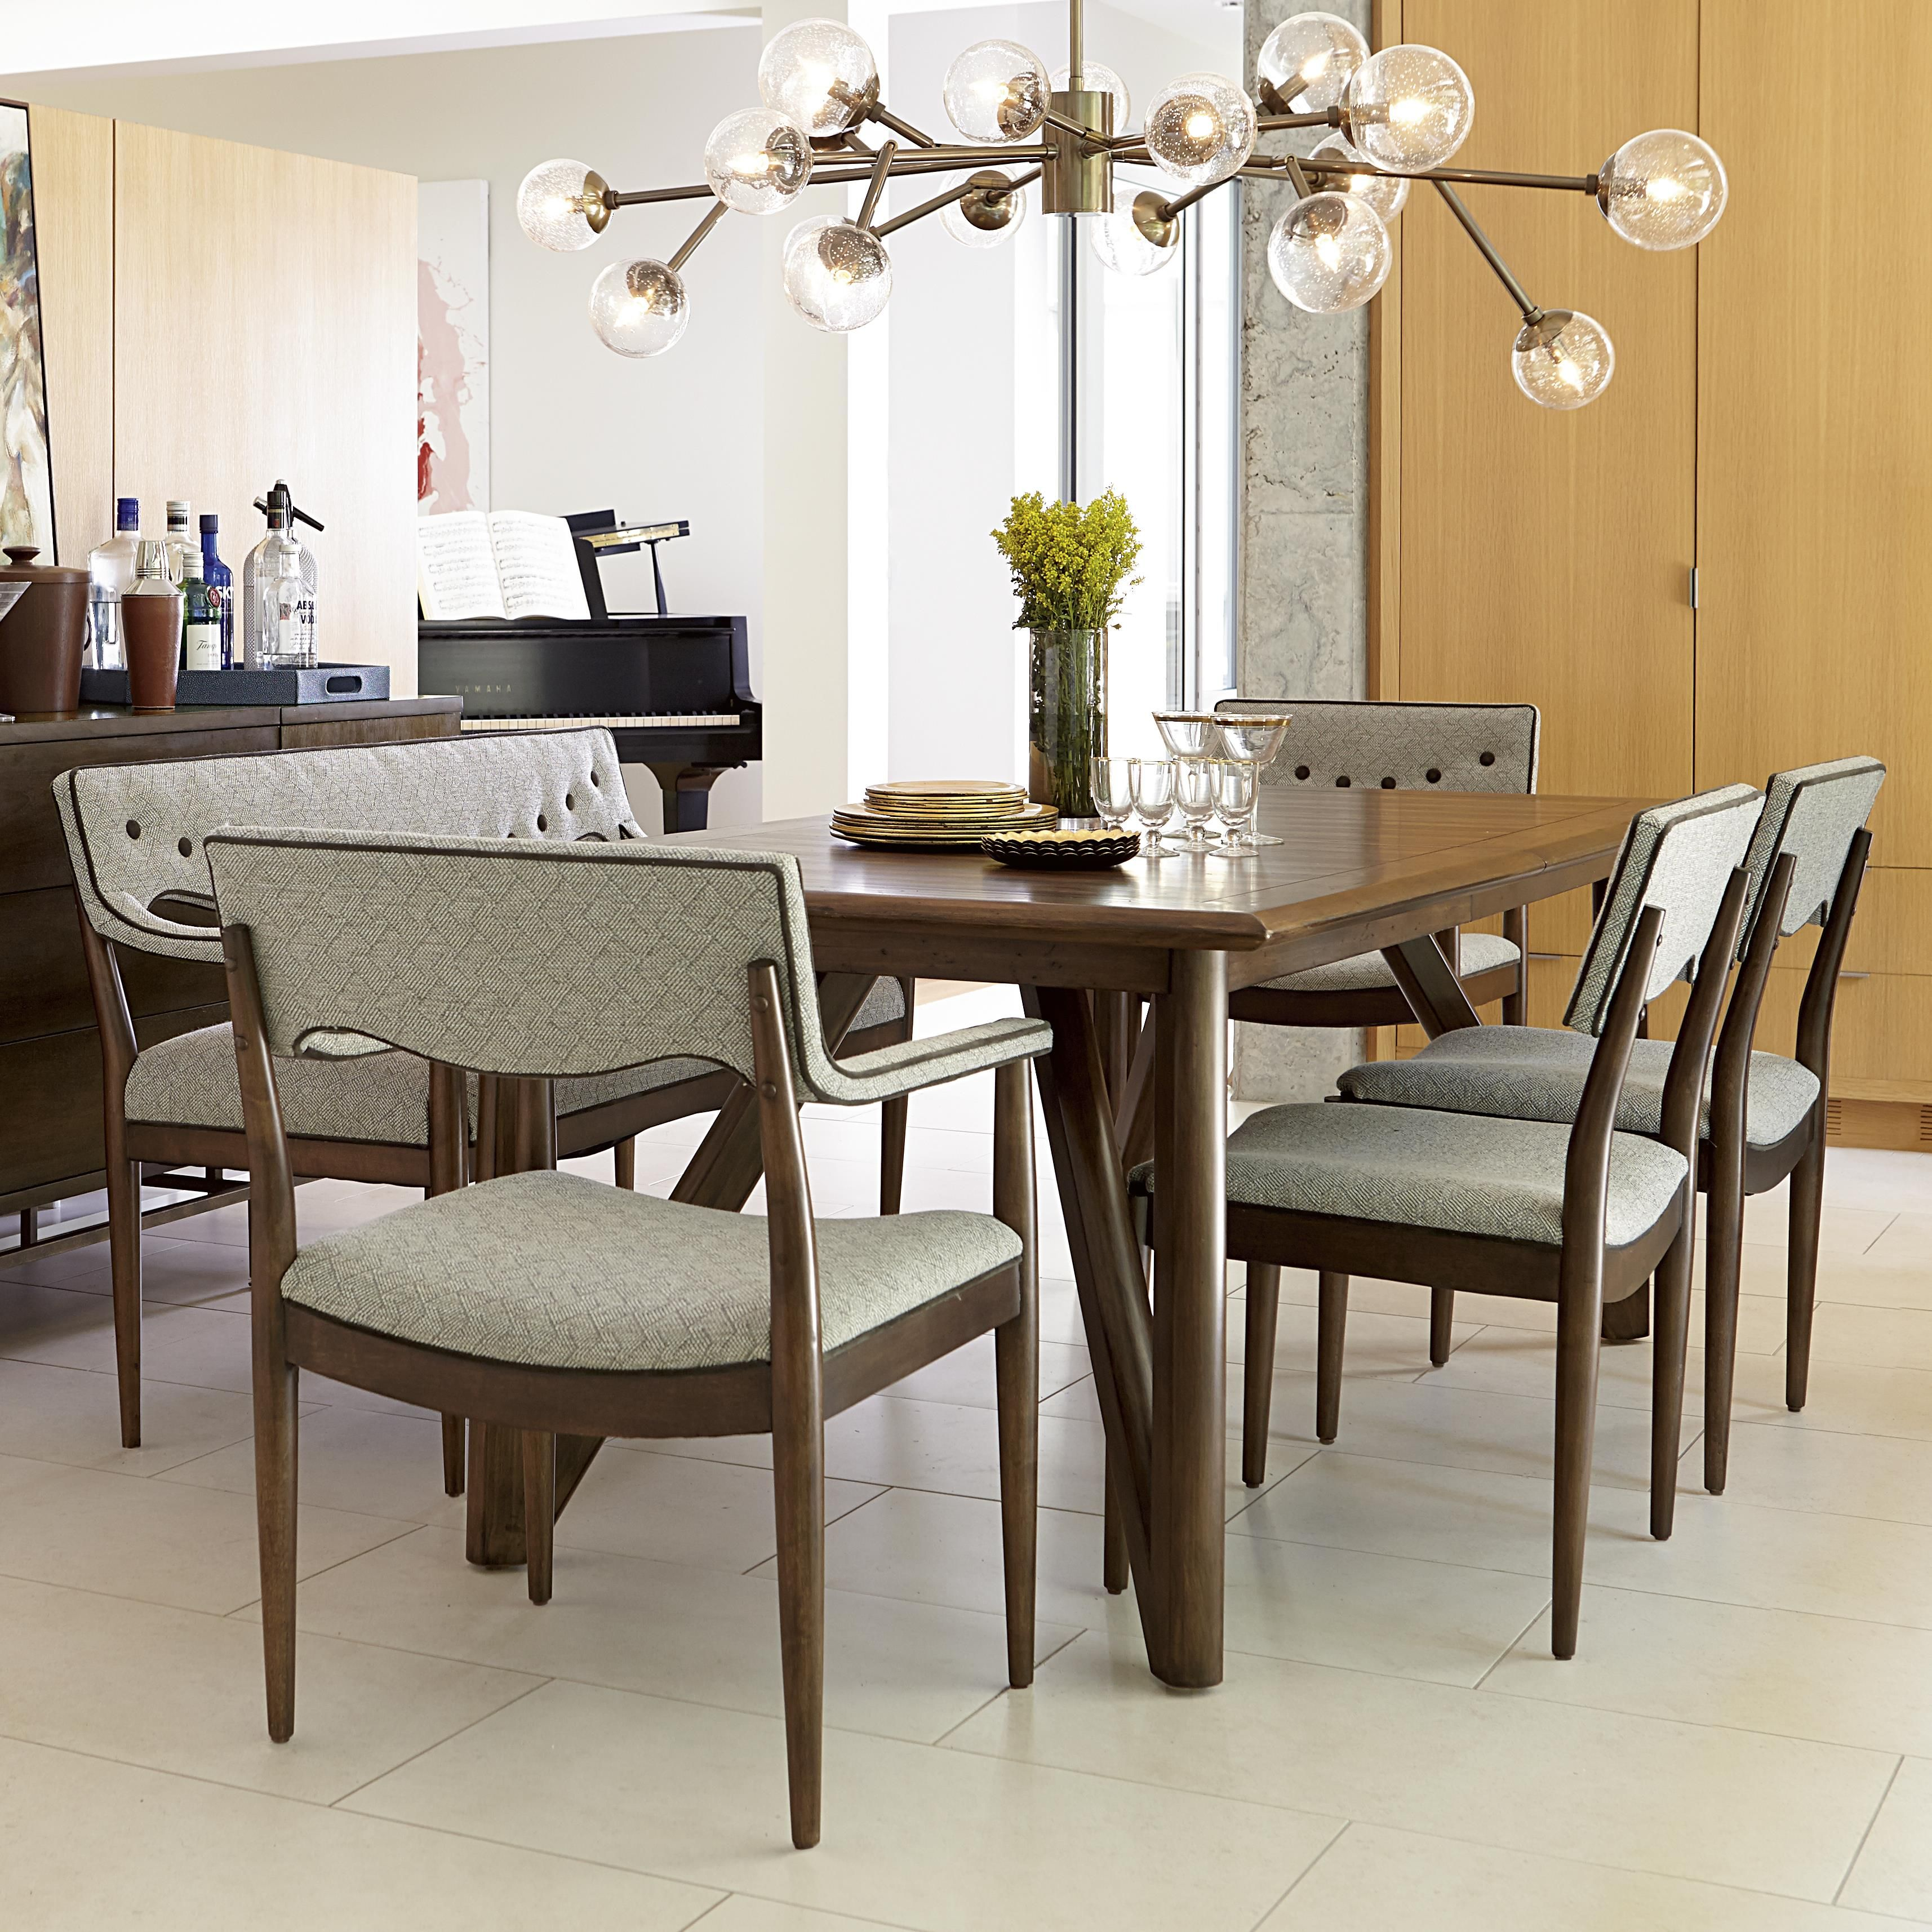 Open And Airy Triangular Shape Legs Bring A Mid Century Modern Inspired  Look To This